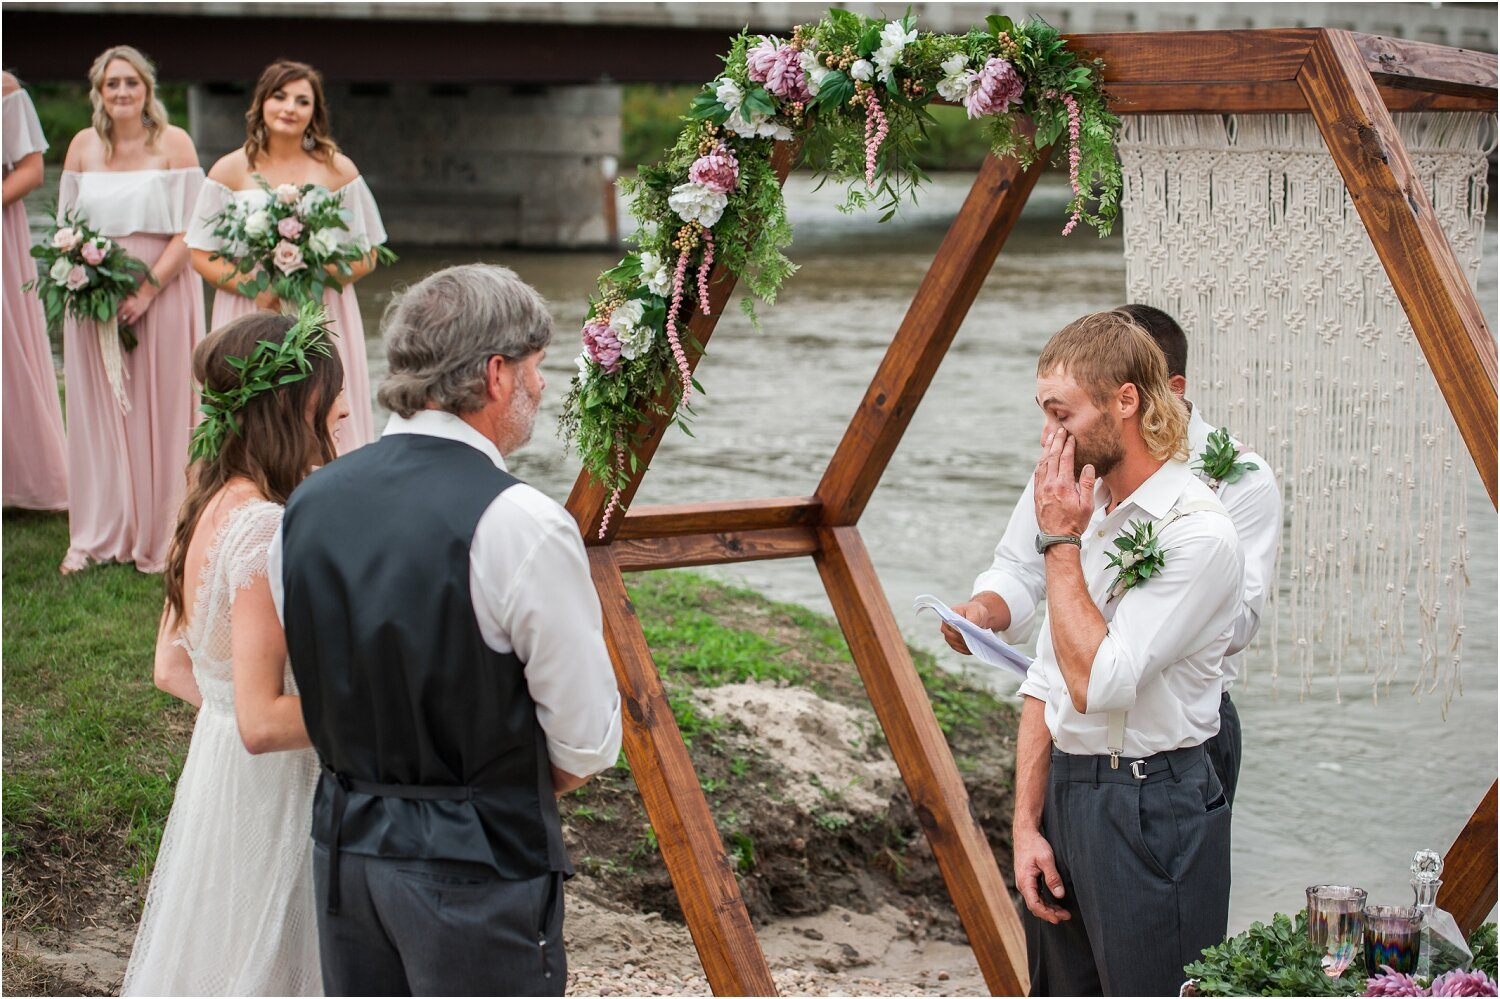 central_nebraska_wedding_2019.jpg